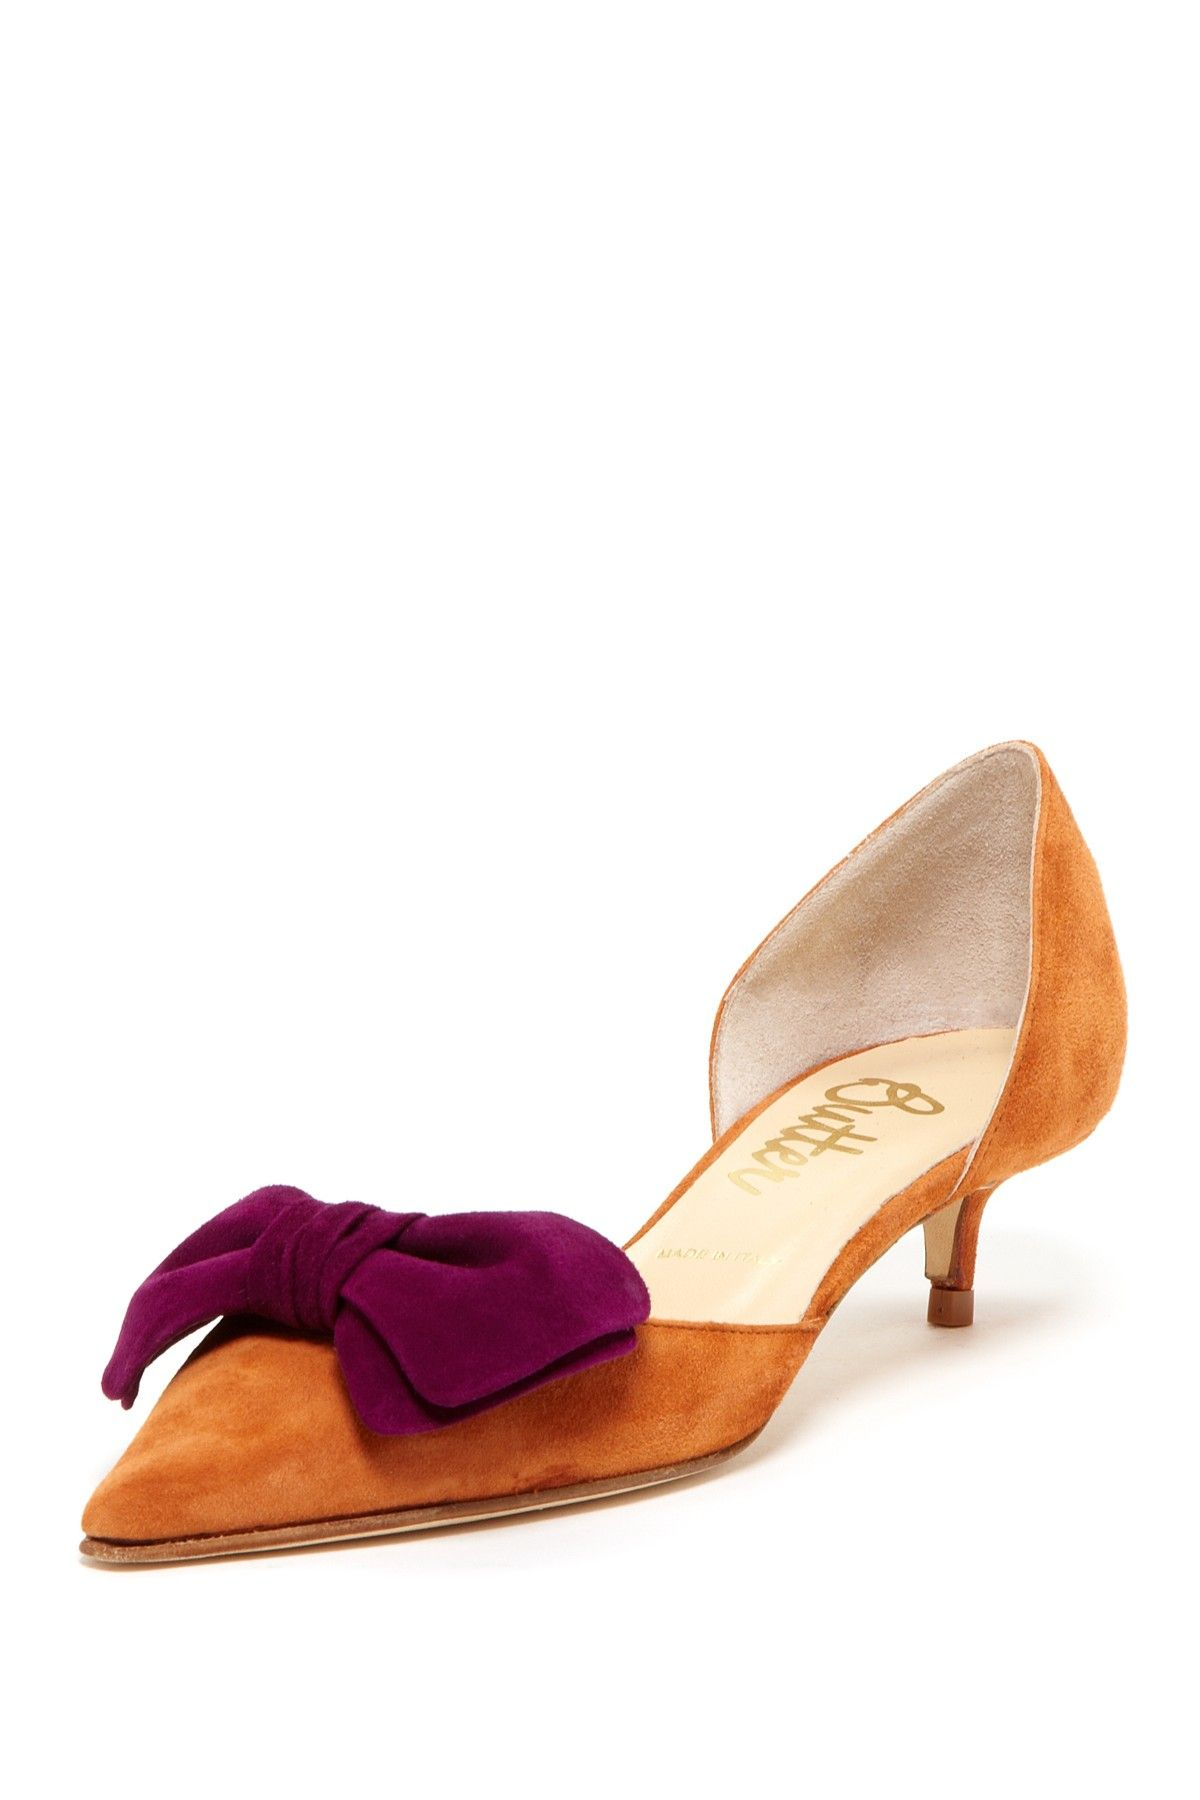 7f7bb0c8ea4 omgoodness..these are sooo cute! .. Butter Peachy Pointed-toe Dorsay Kitten  Heel